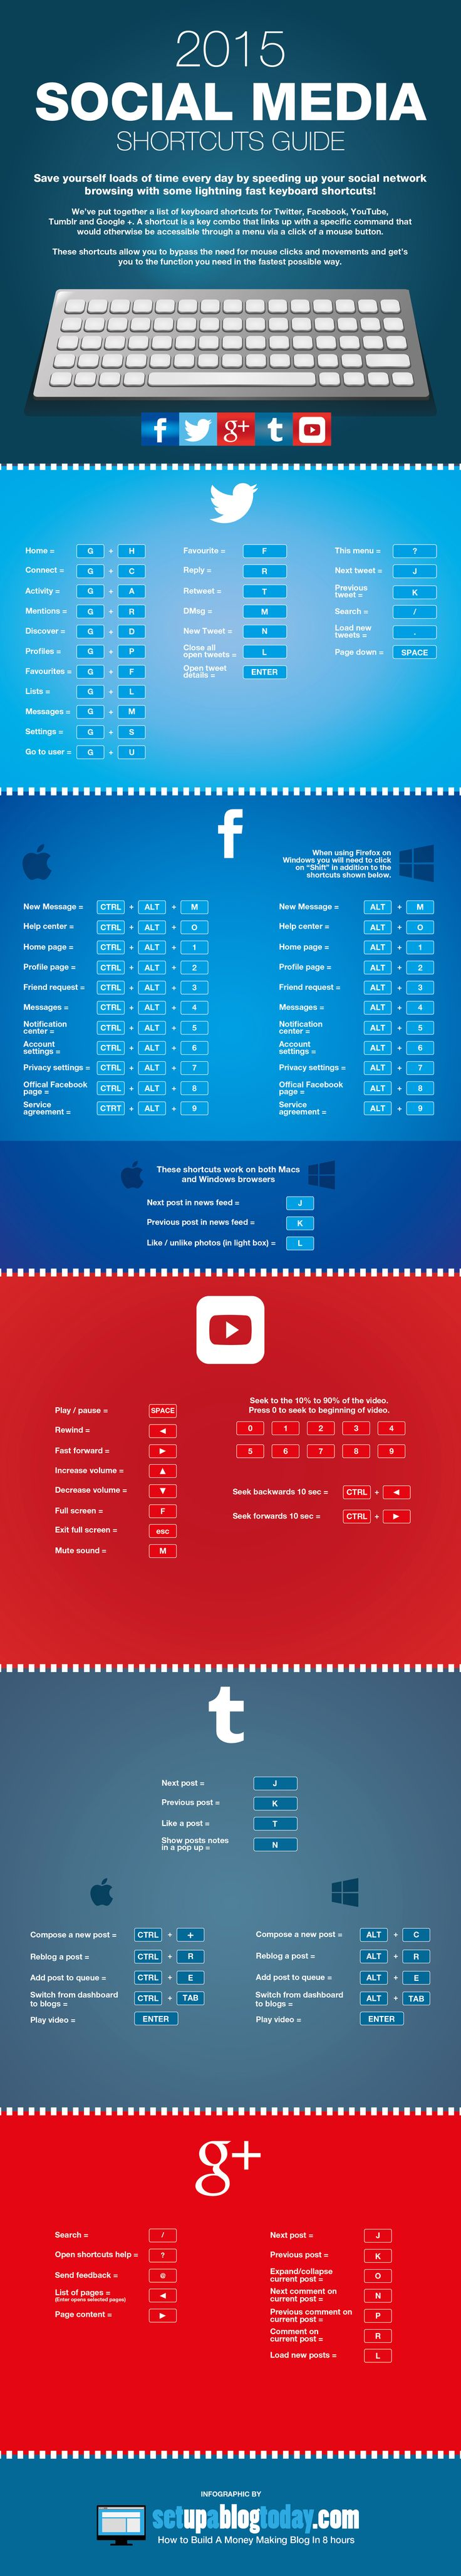 The Handy Guide to Social Media Keyboard Shortcuts Infographic-2015